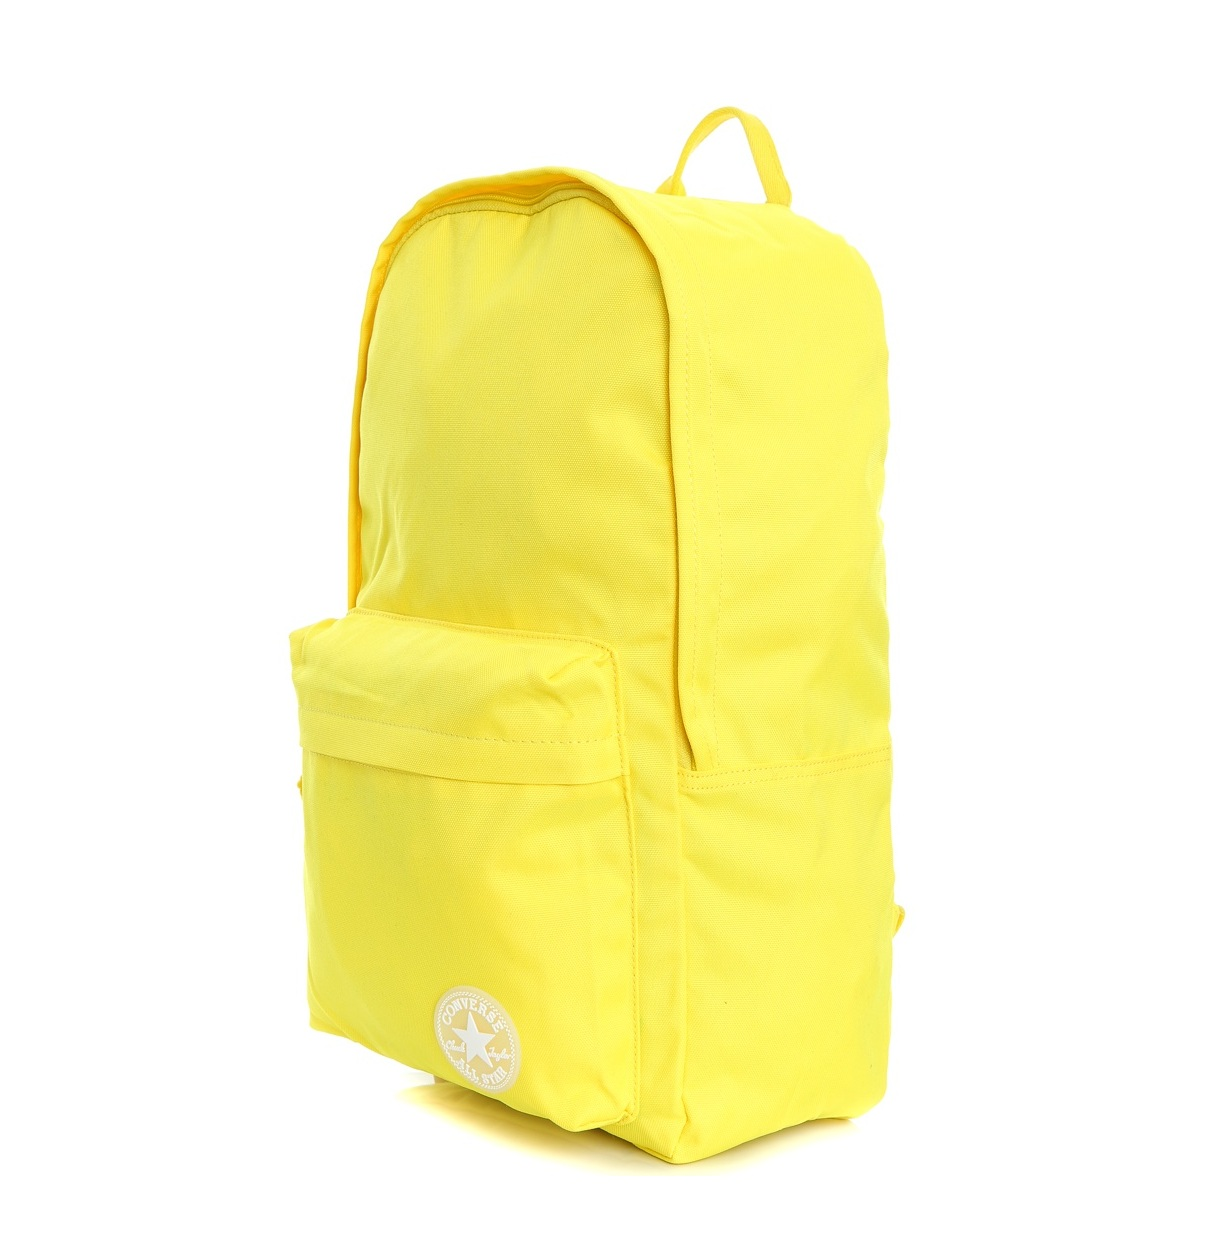 converse all star bag yellow